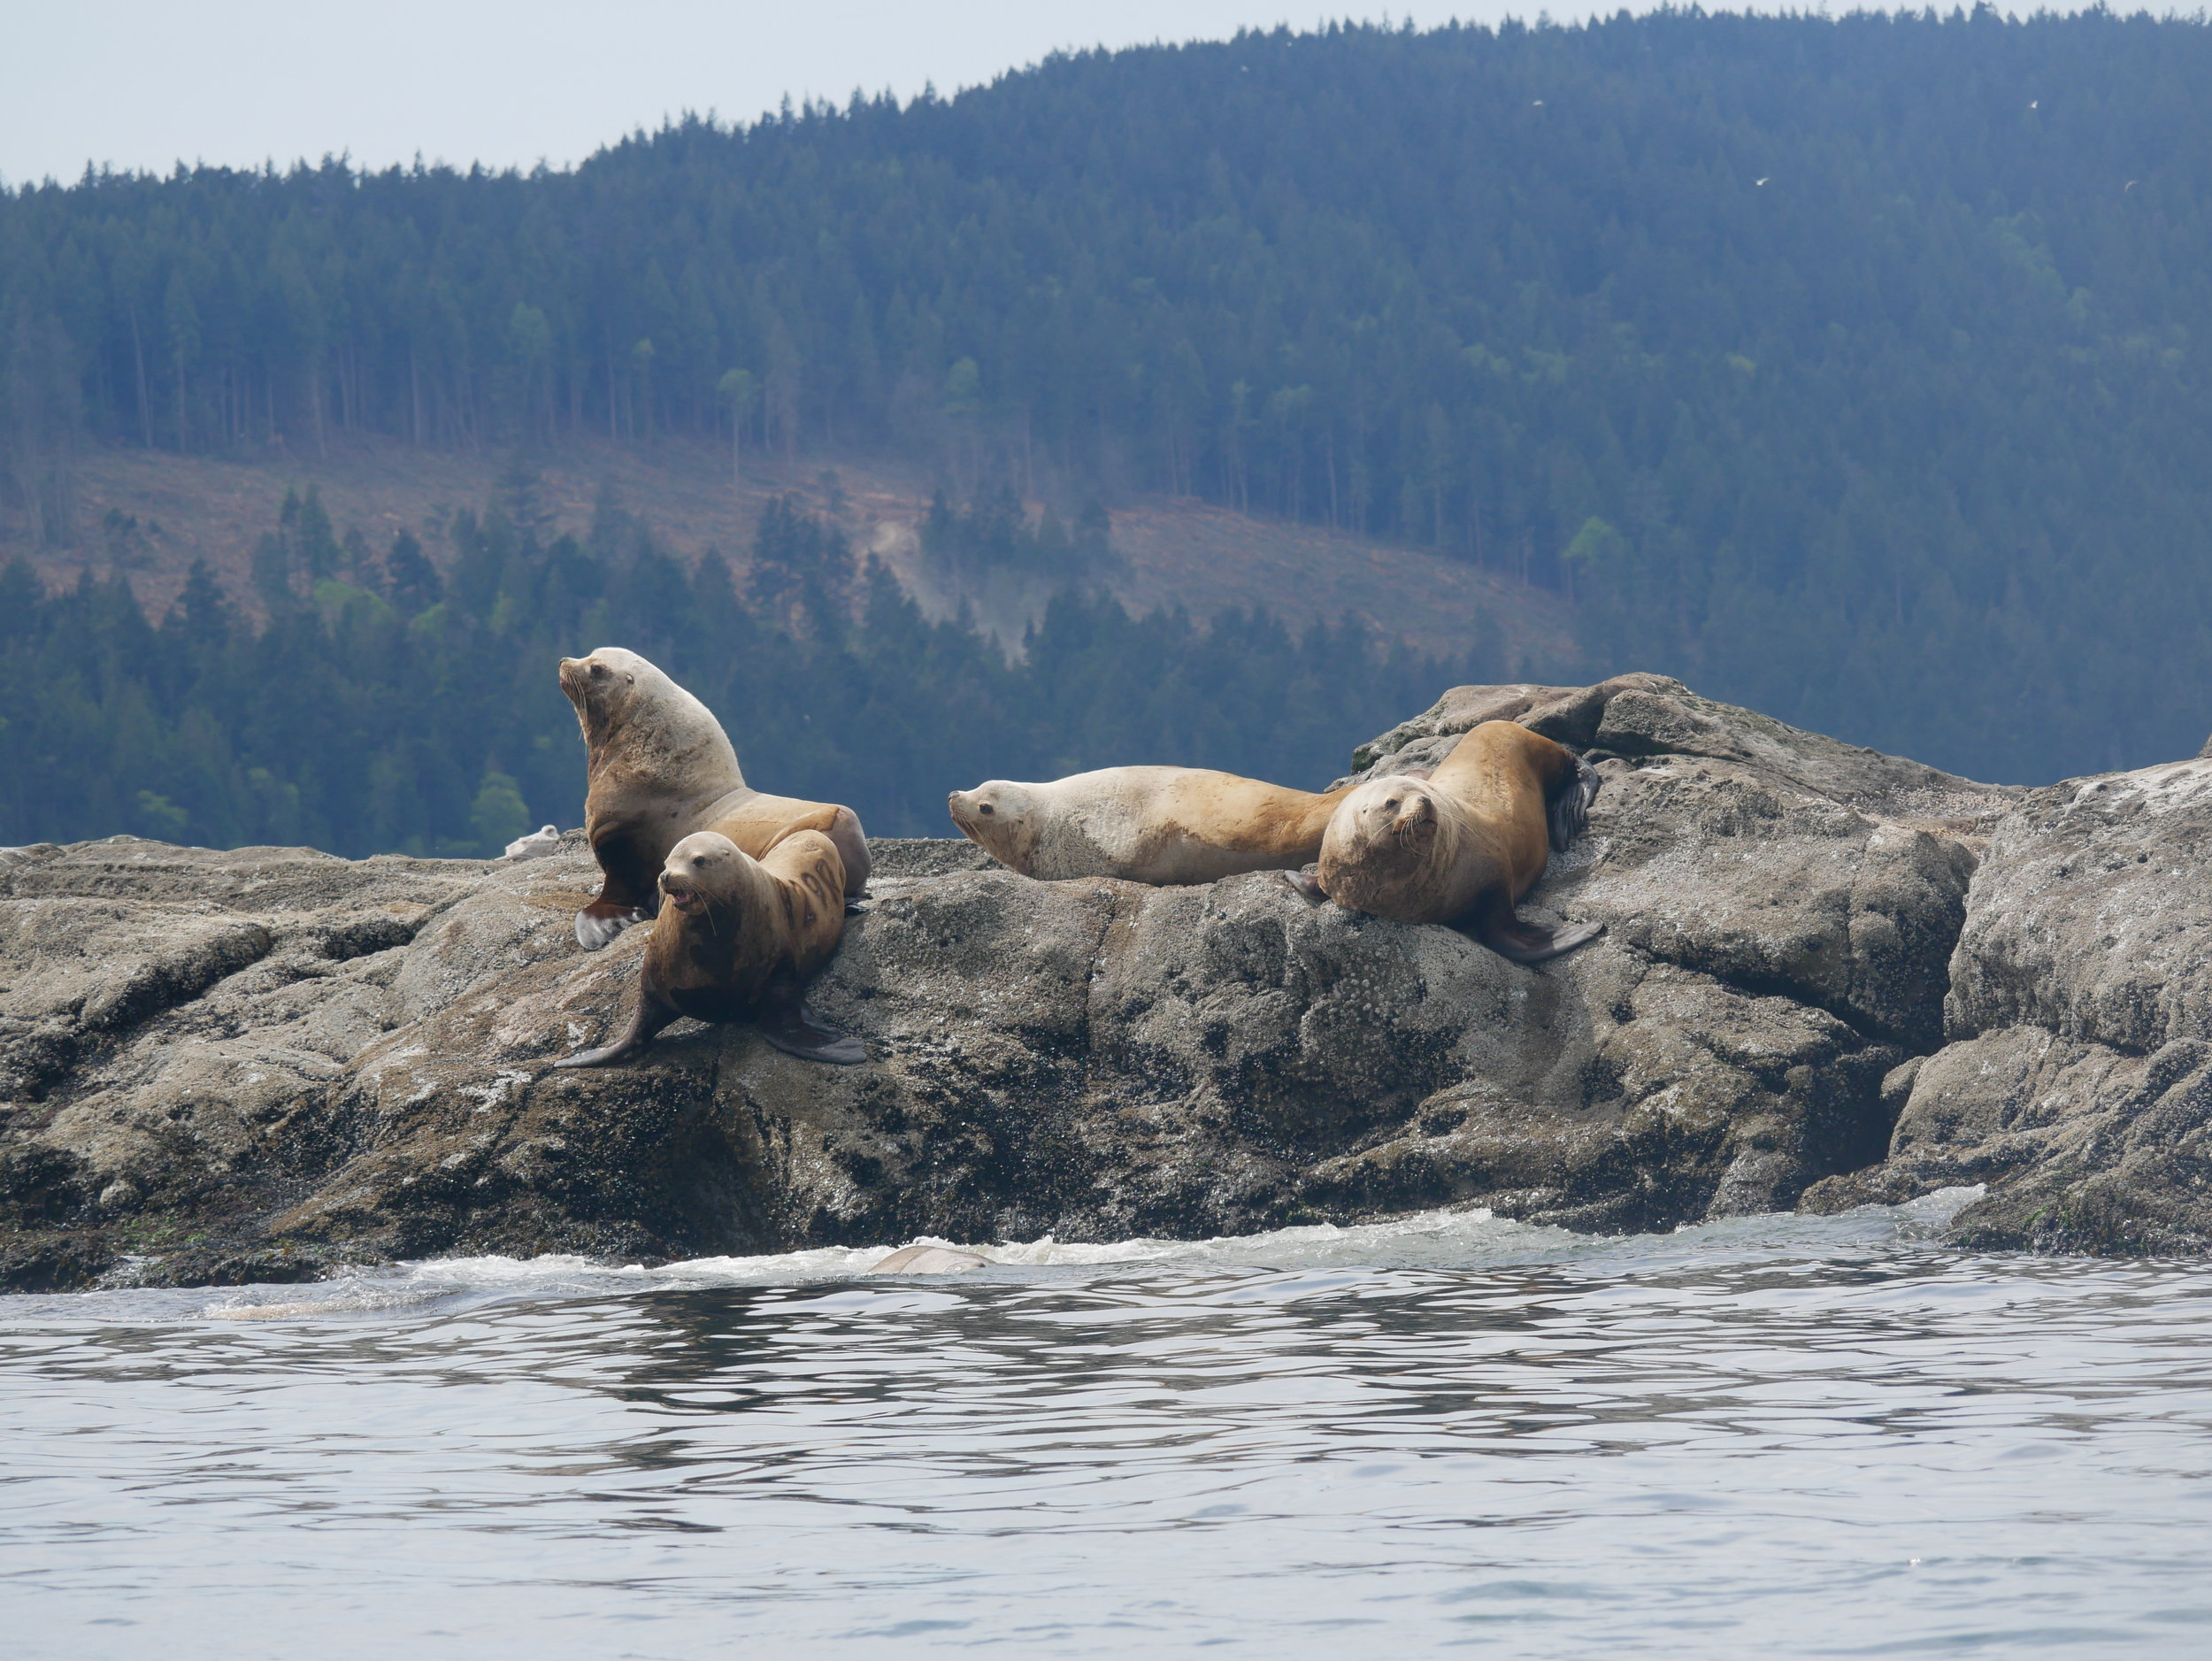 Big Steller's Sea lions! Check out the branding on the one in the front. The branding is used as a long-term tracking method to keep track of individuals and be able to identify them from a far distance.  Photo by Alanna Vivani.